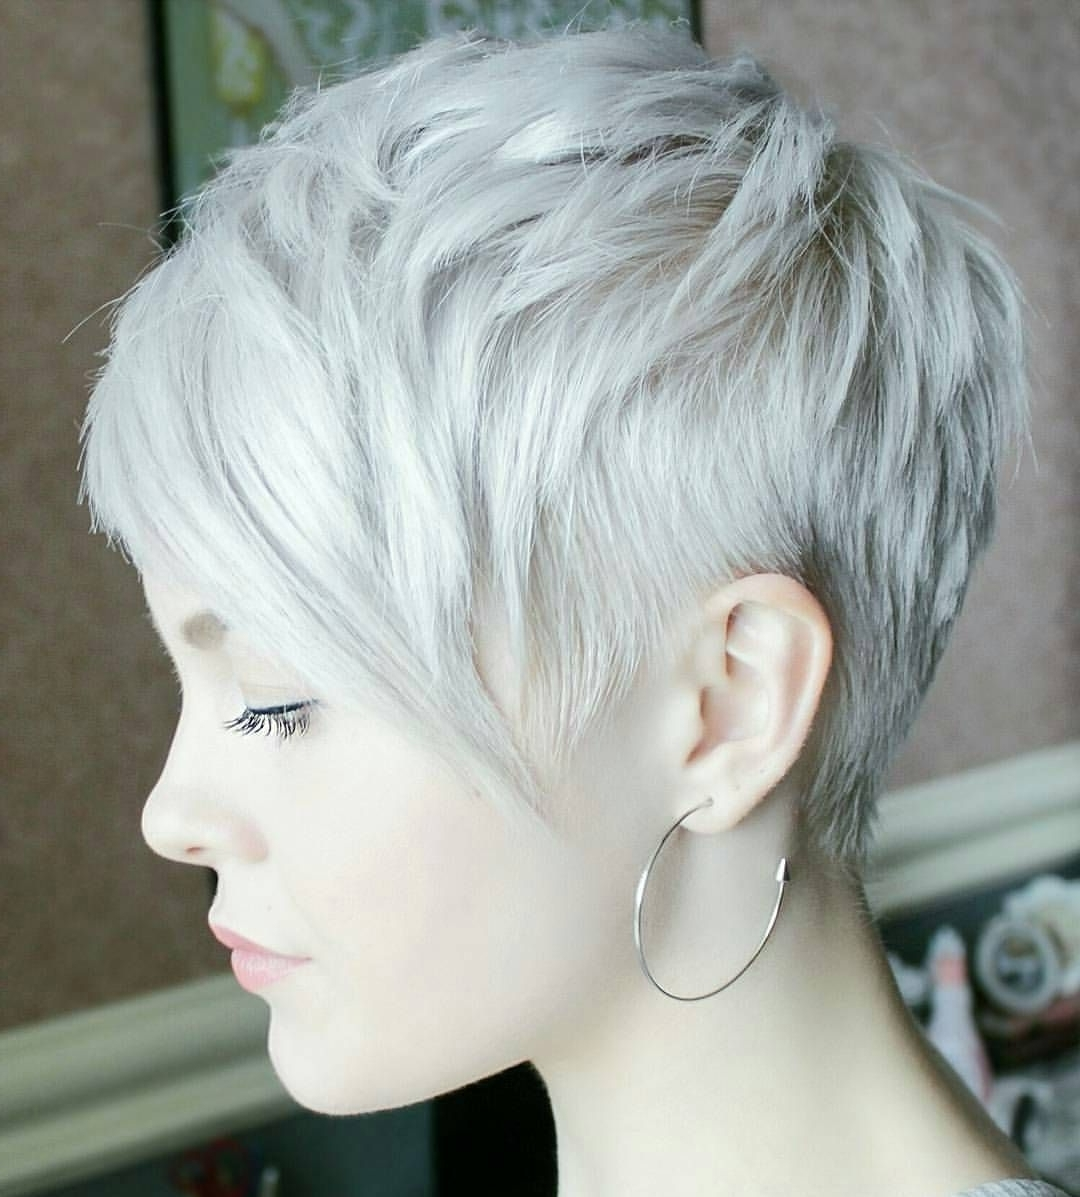 50 Trendsetting Short And Long Pixie Haircut Styles — Cutest Of Them Within Most Current Tapered Pixie Haircuts With Long Bangs (View 5 of 15)